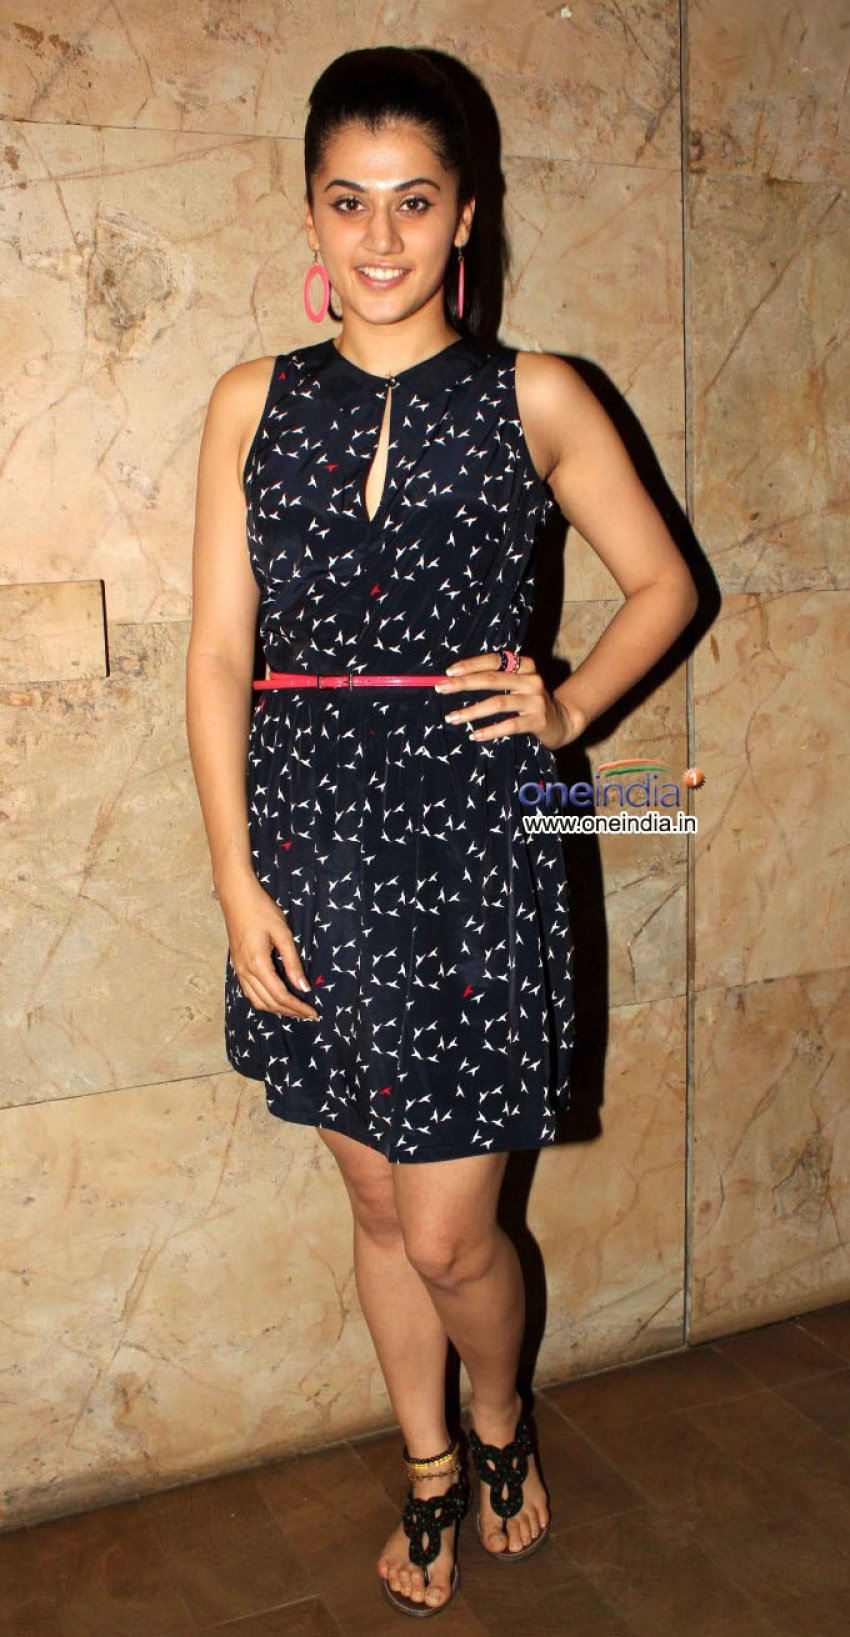 Special Screening of Chashme Baddoor Photos